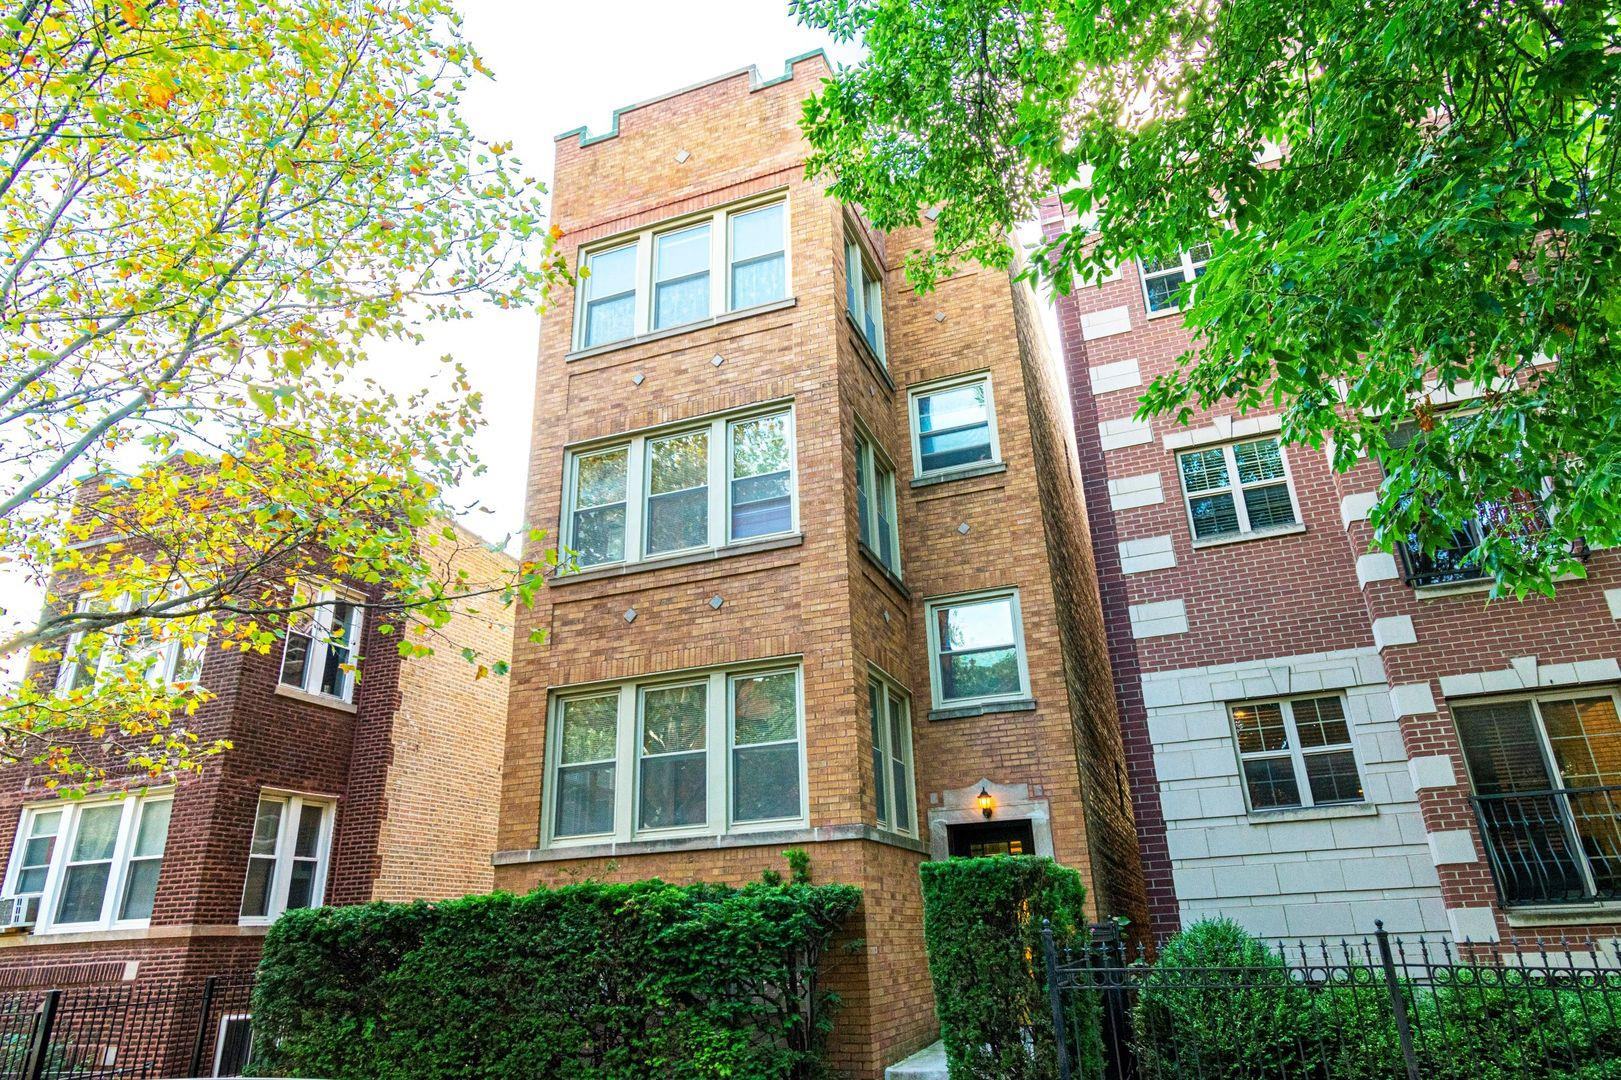 4930 N Whipple Street, Chicago, IL 60625 - #: 10914856